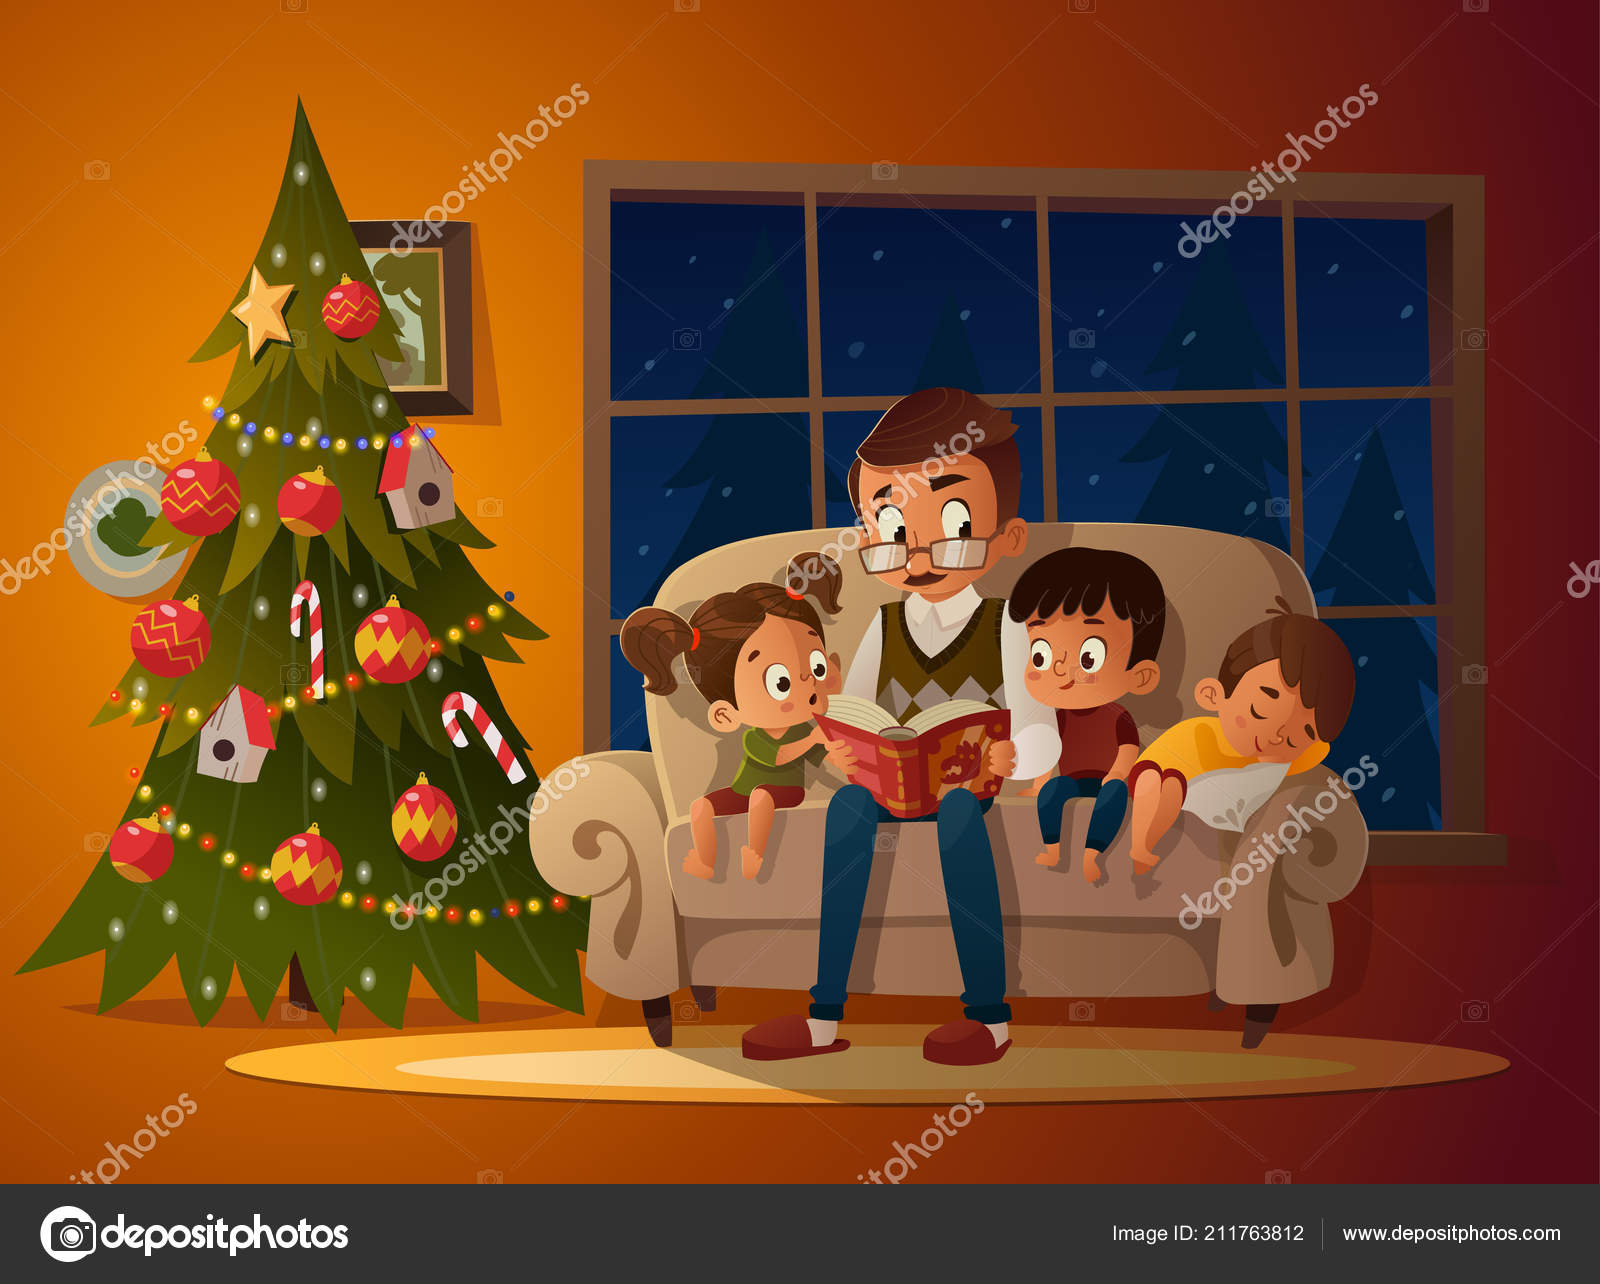 depositphotos_211763812-stock-illustration-grandfather-sitting-with-grandchildren-on.jpg